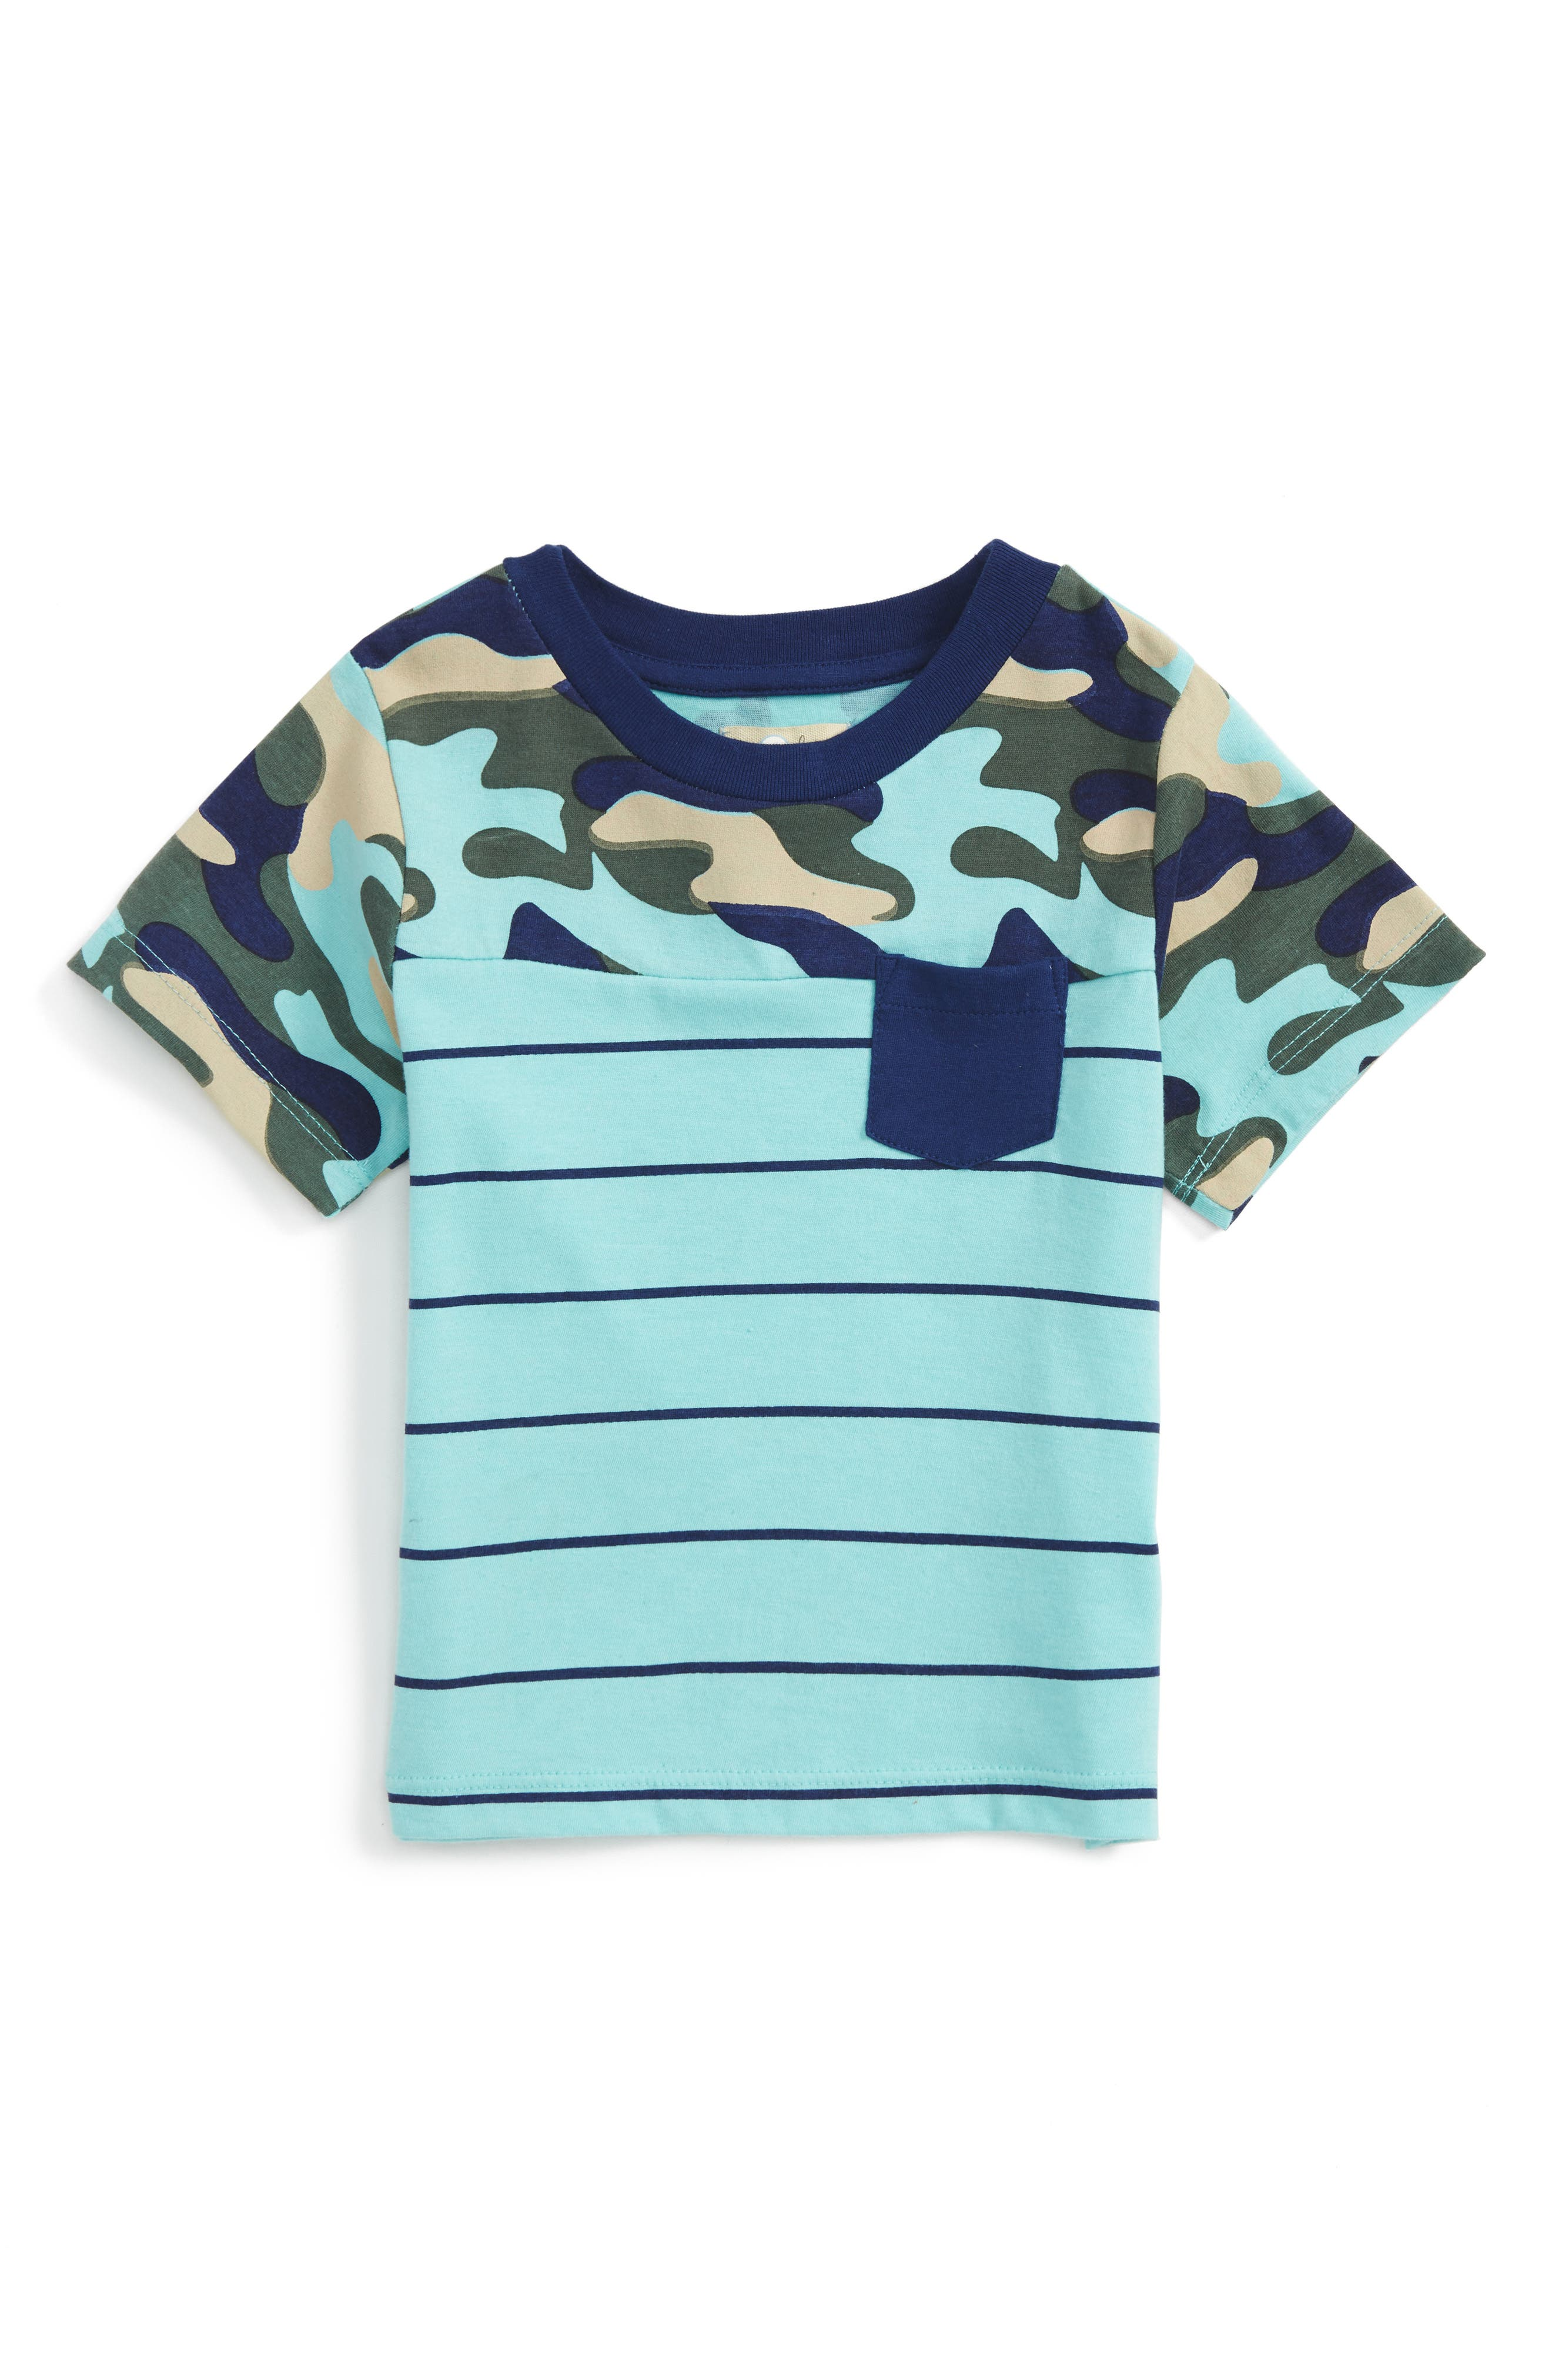 PEEK Brett Camo Stripe T-Shirt